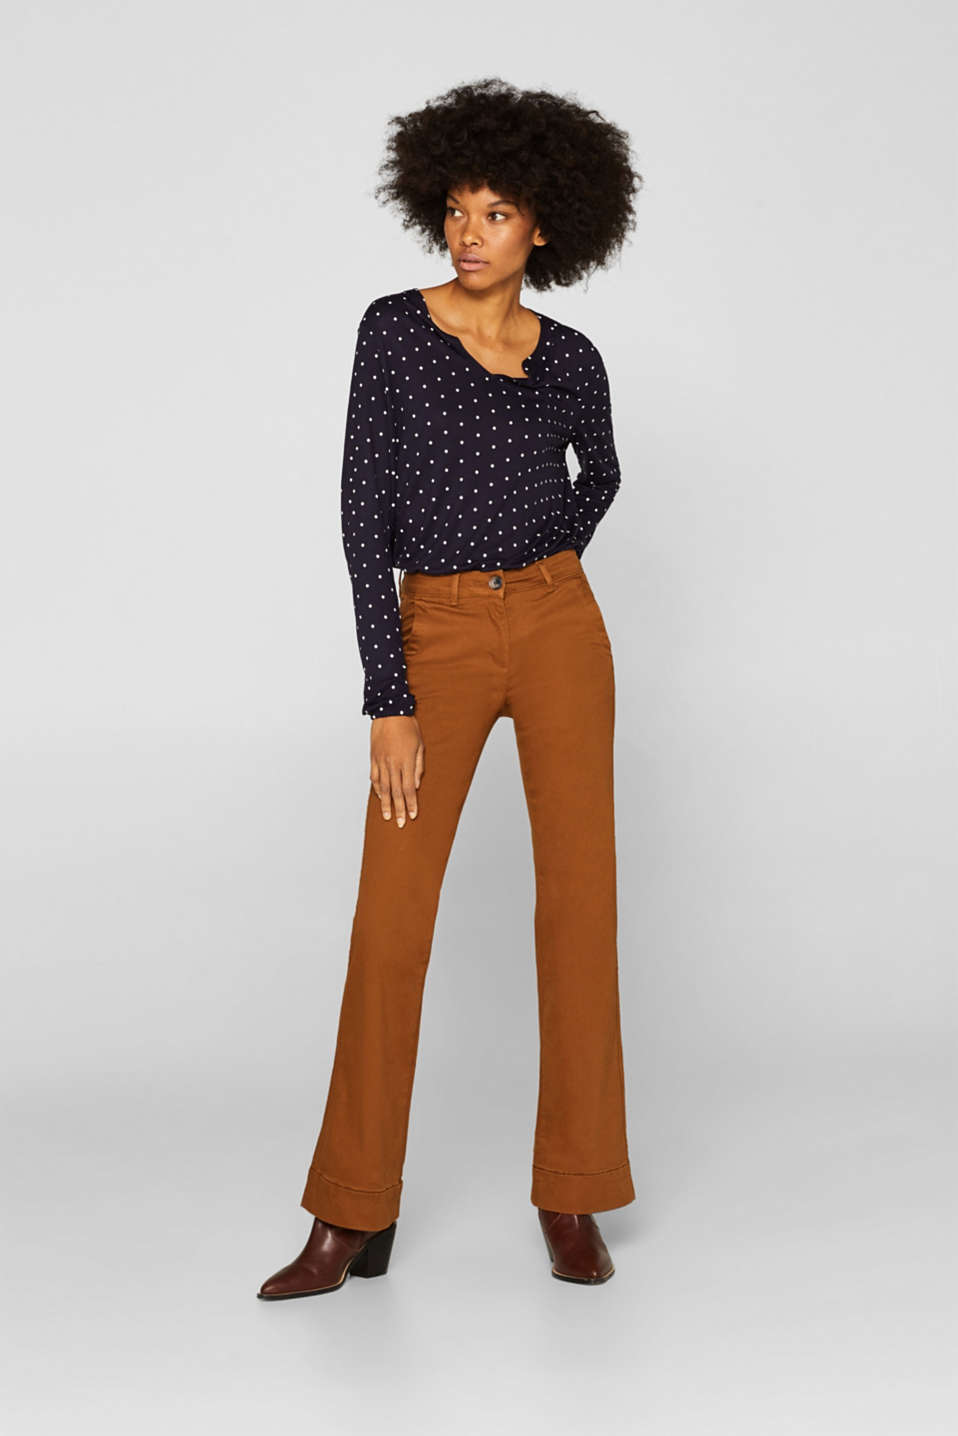 Polka dot top with cloth details, NAVY, detail image number 1